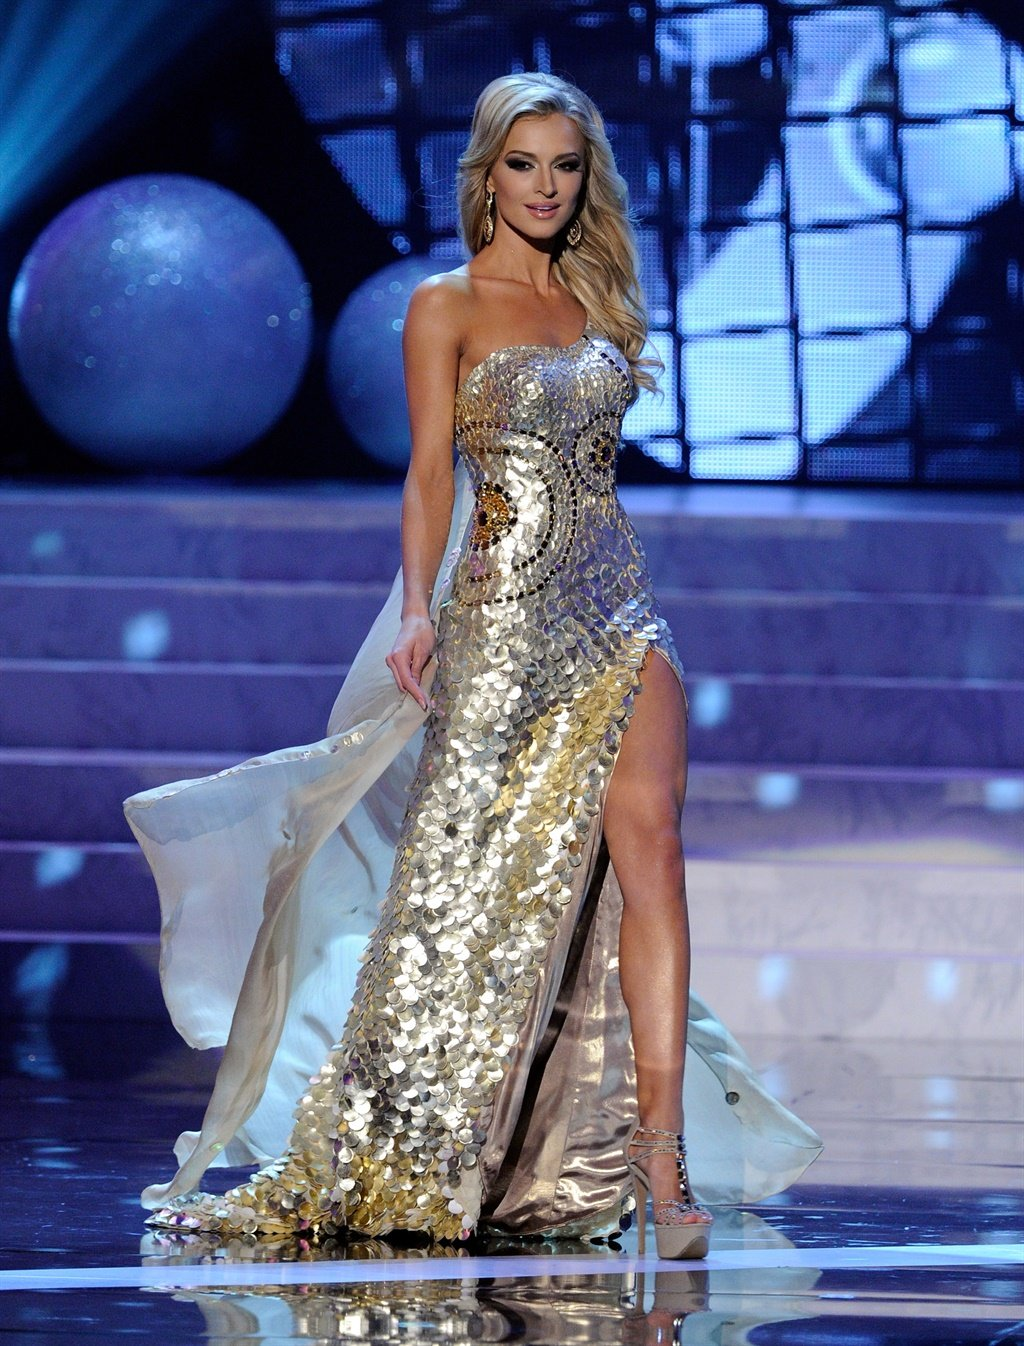 Miss universe dresses images